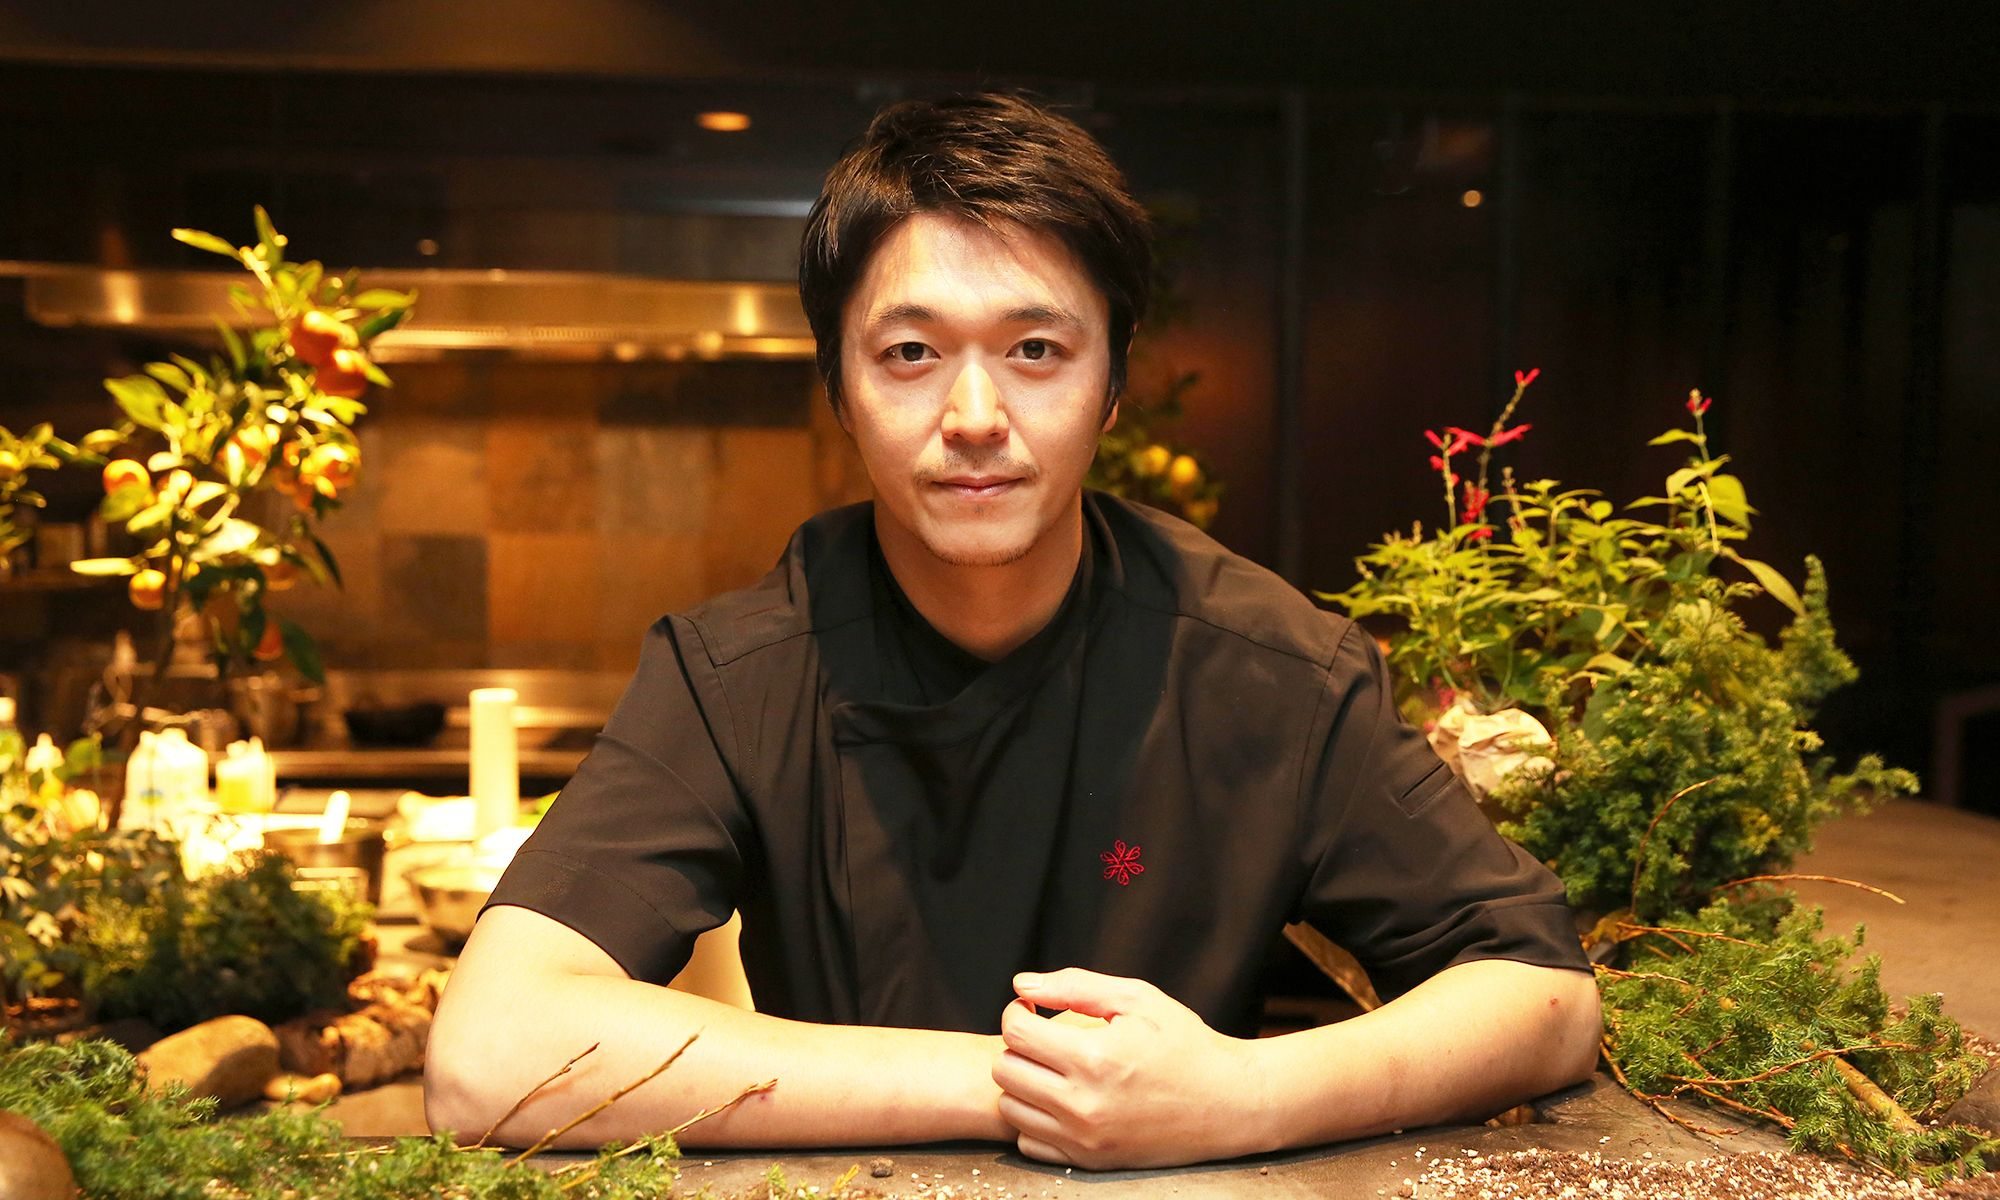 Meet the Chef Reinventing French Cuisine with Japanese Ingredients